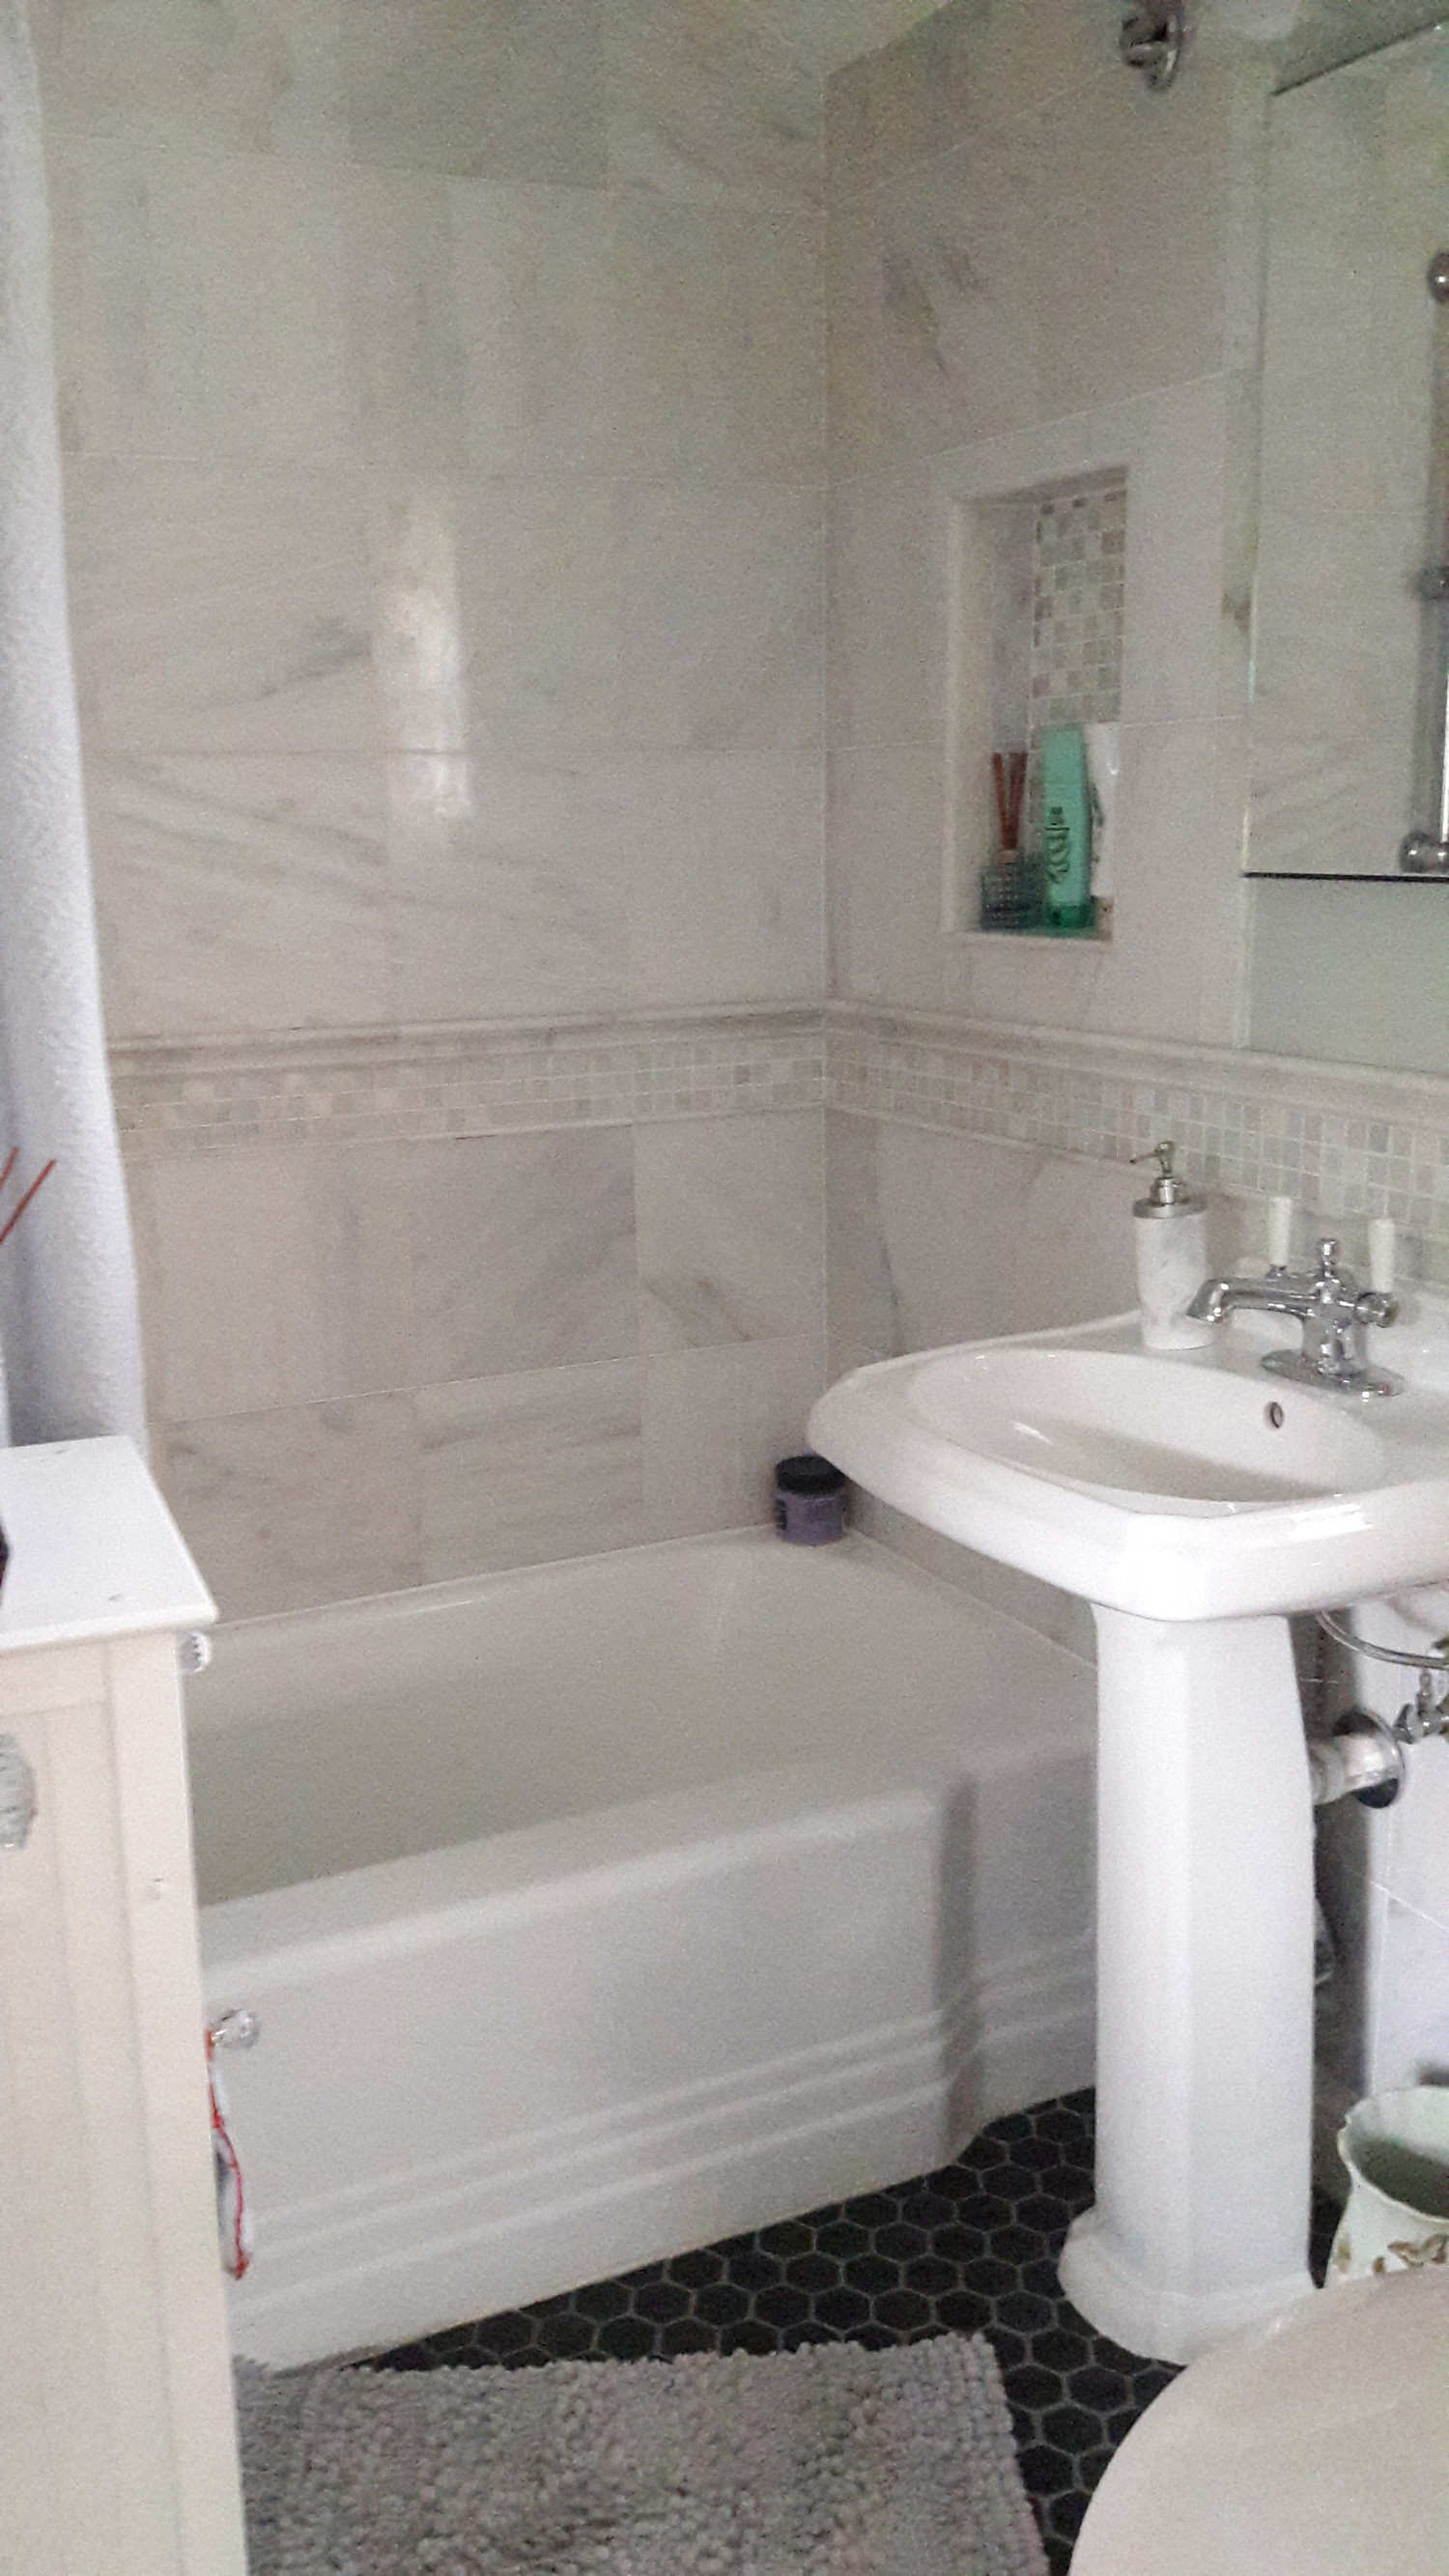 Private room and bath with easy access to transportation